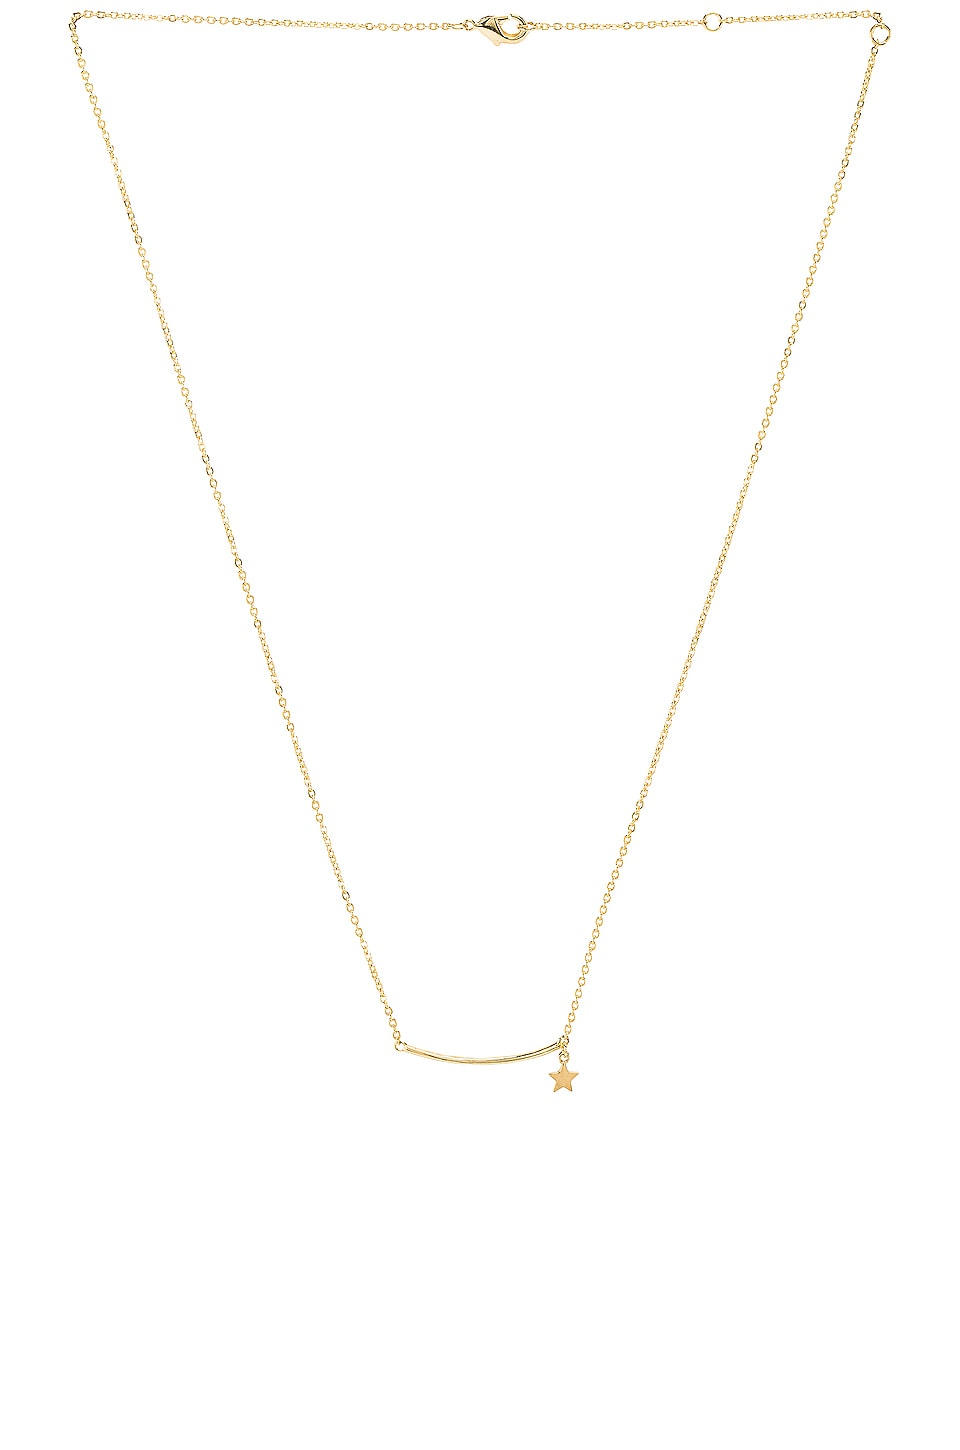 EIGHT by GJENMI JEWELRY Shooting Star Necklace in Gold